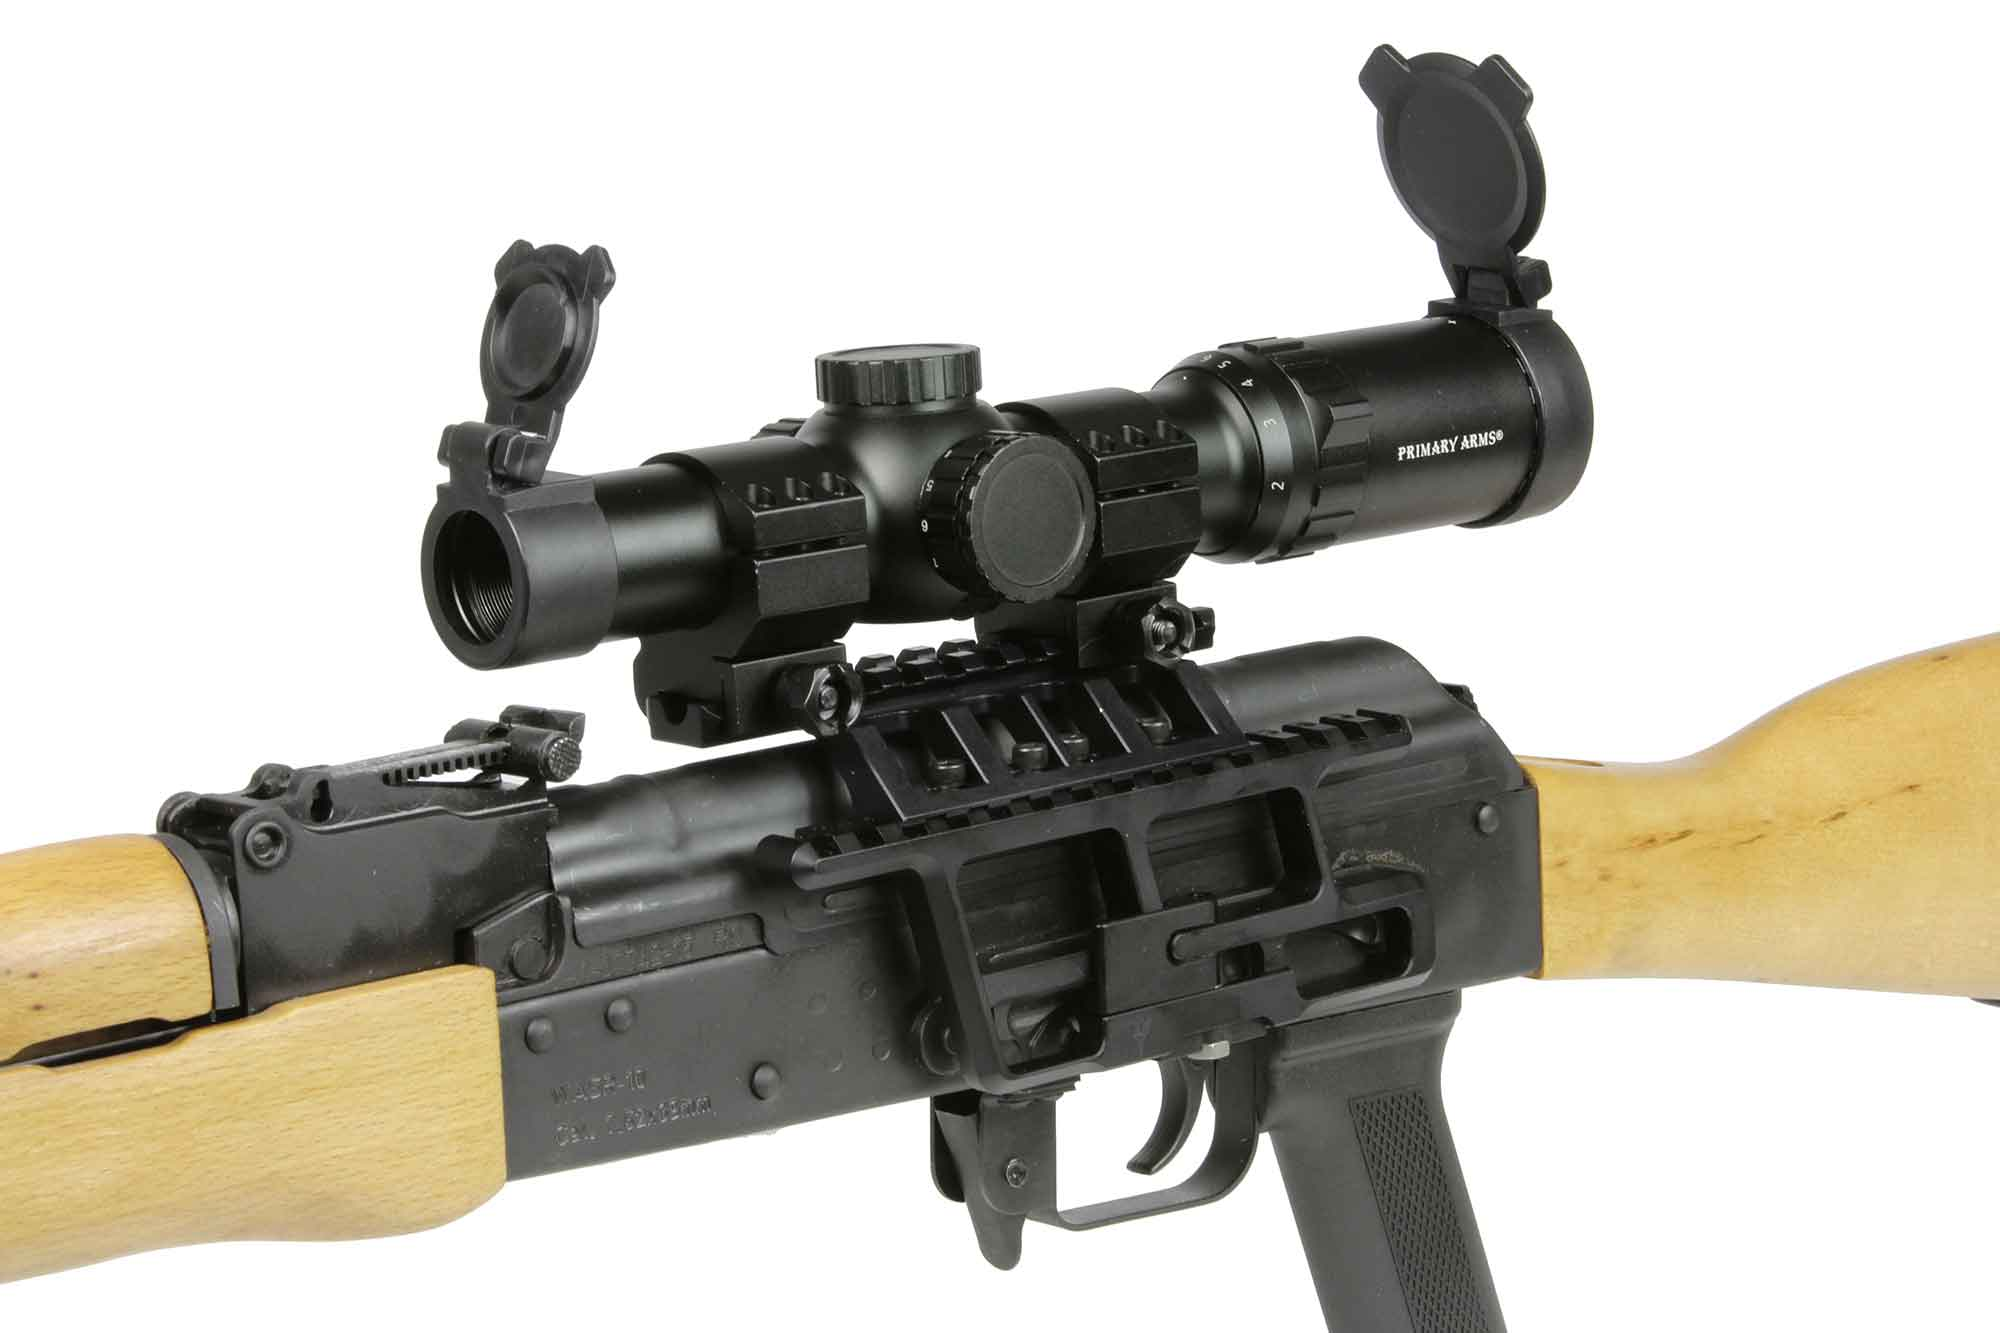 The Primary Arms 1-6x sfp riflescope attached to an ak-47 semi automatic rifle that shoots 7.62x39 ammo